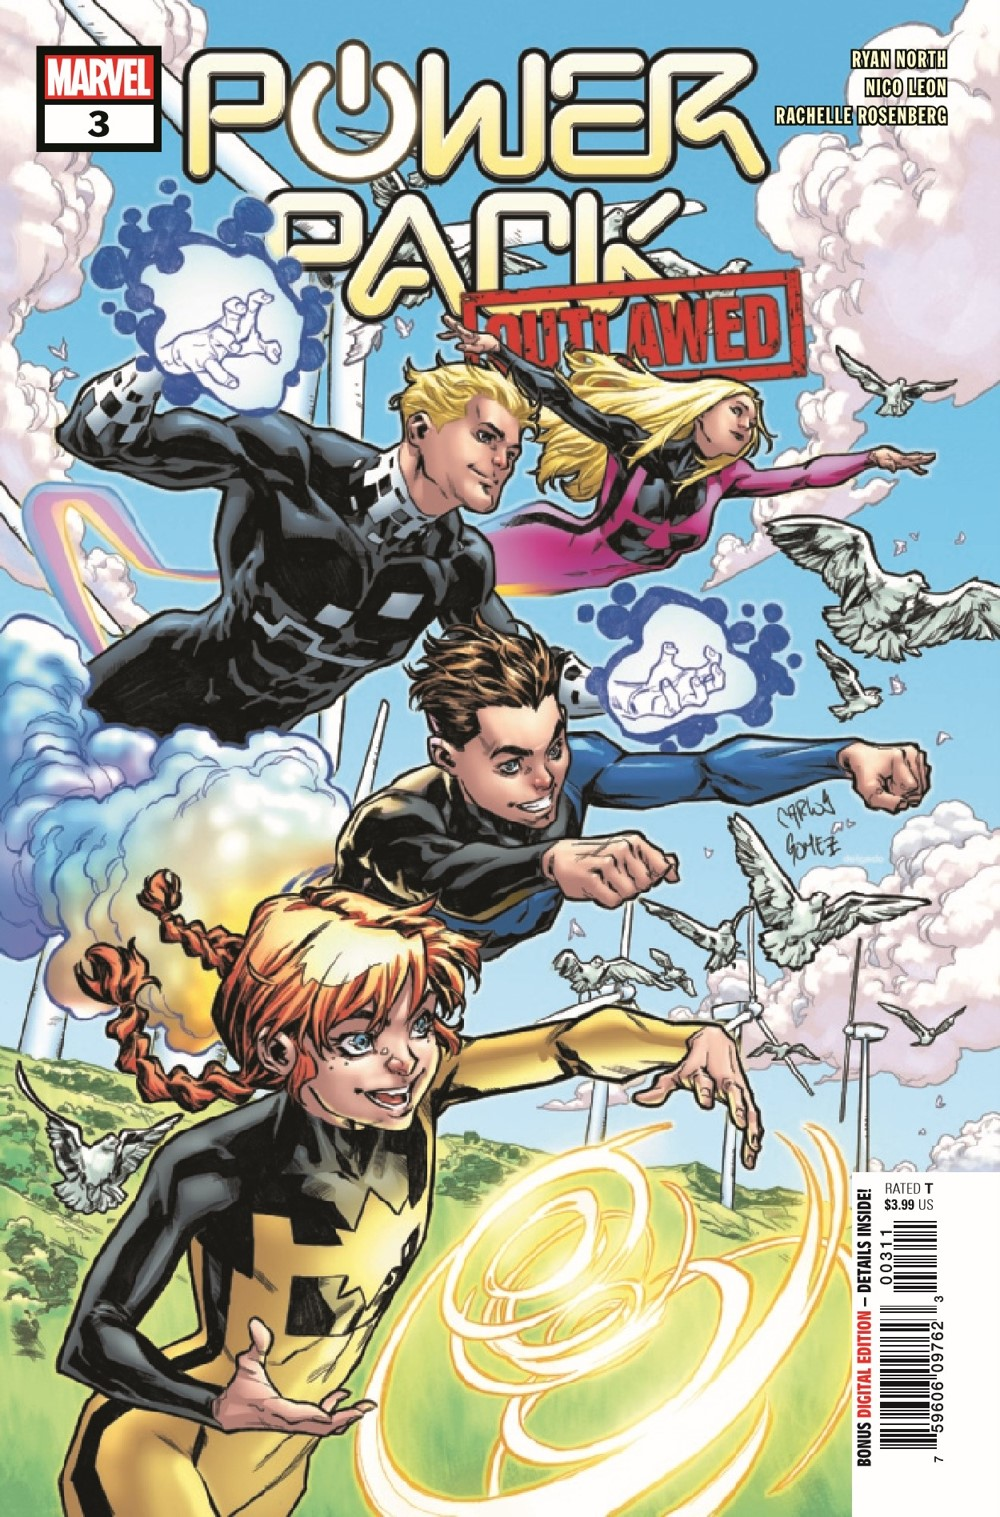 PWRPAC2020003_Preview-1 ComicList Previews: POWER PACK #3 (OF 5)